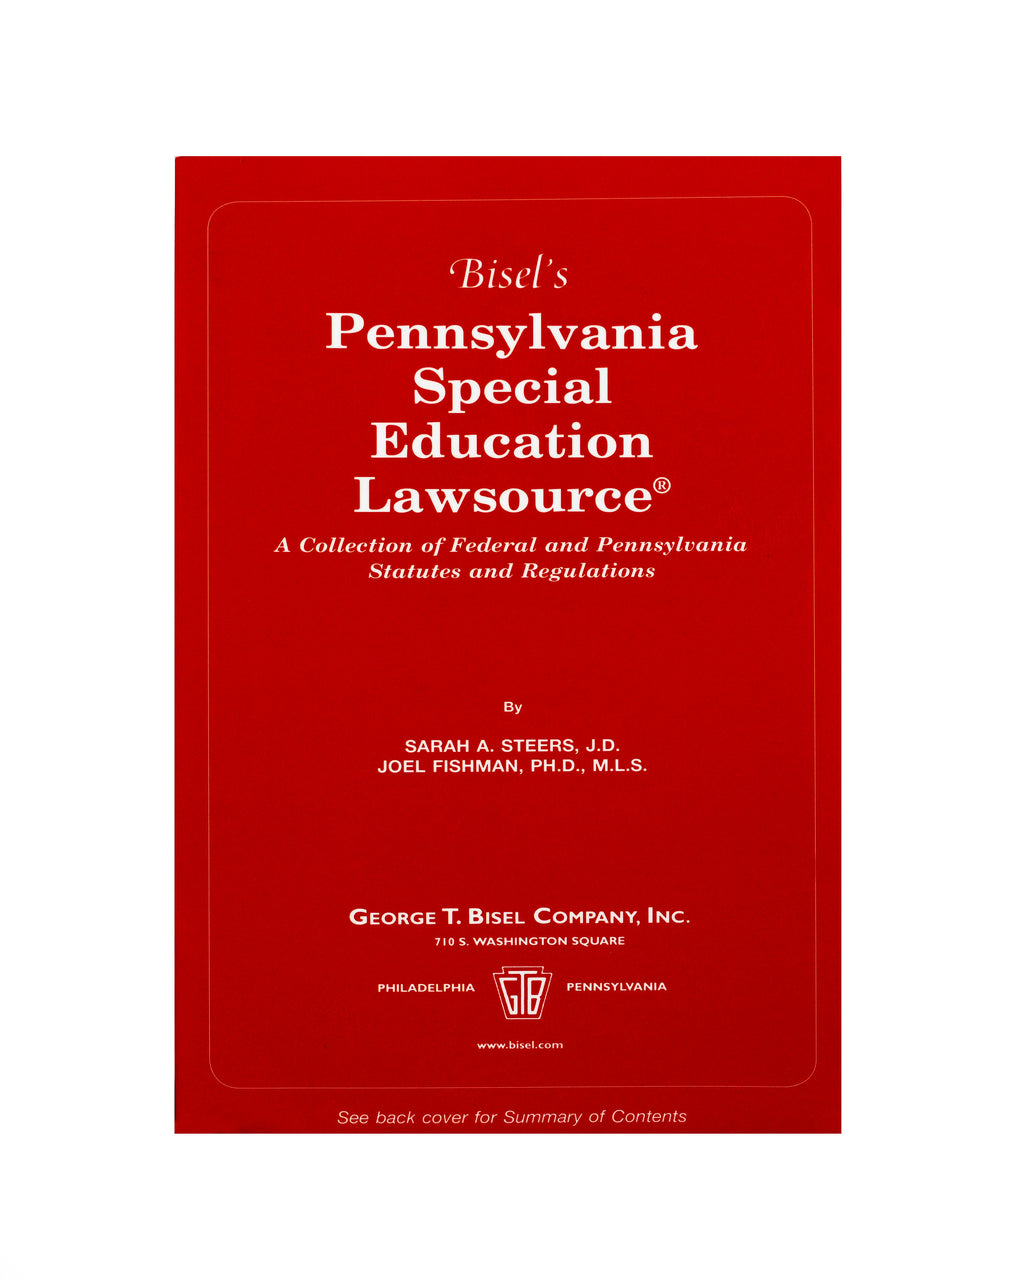 PA Special Education Lawsource (includes book + digital download)